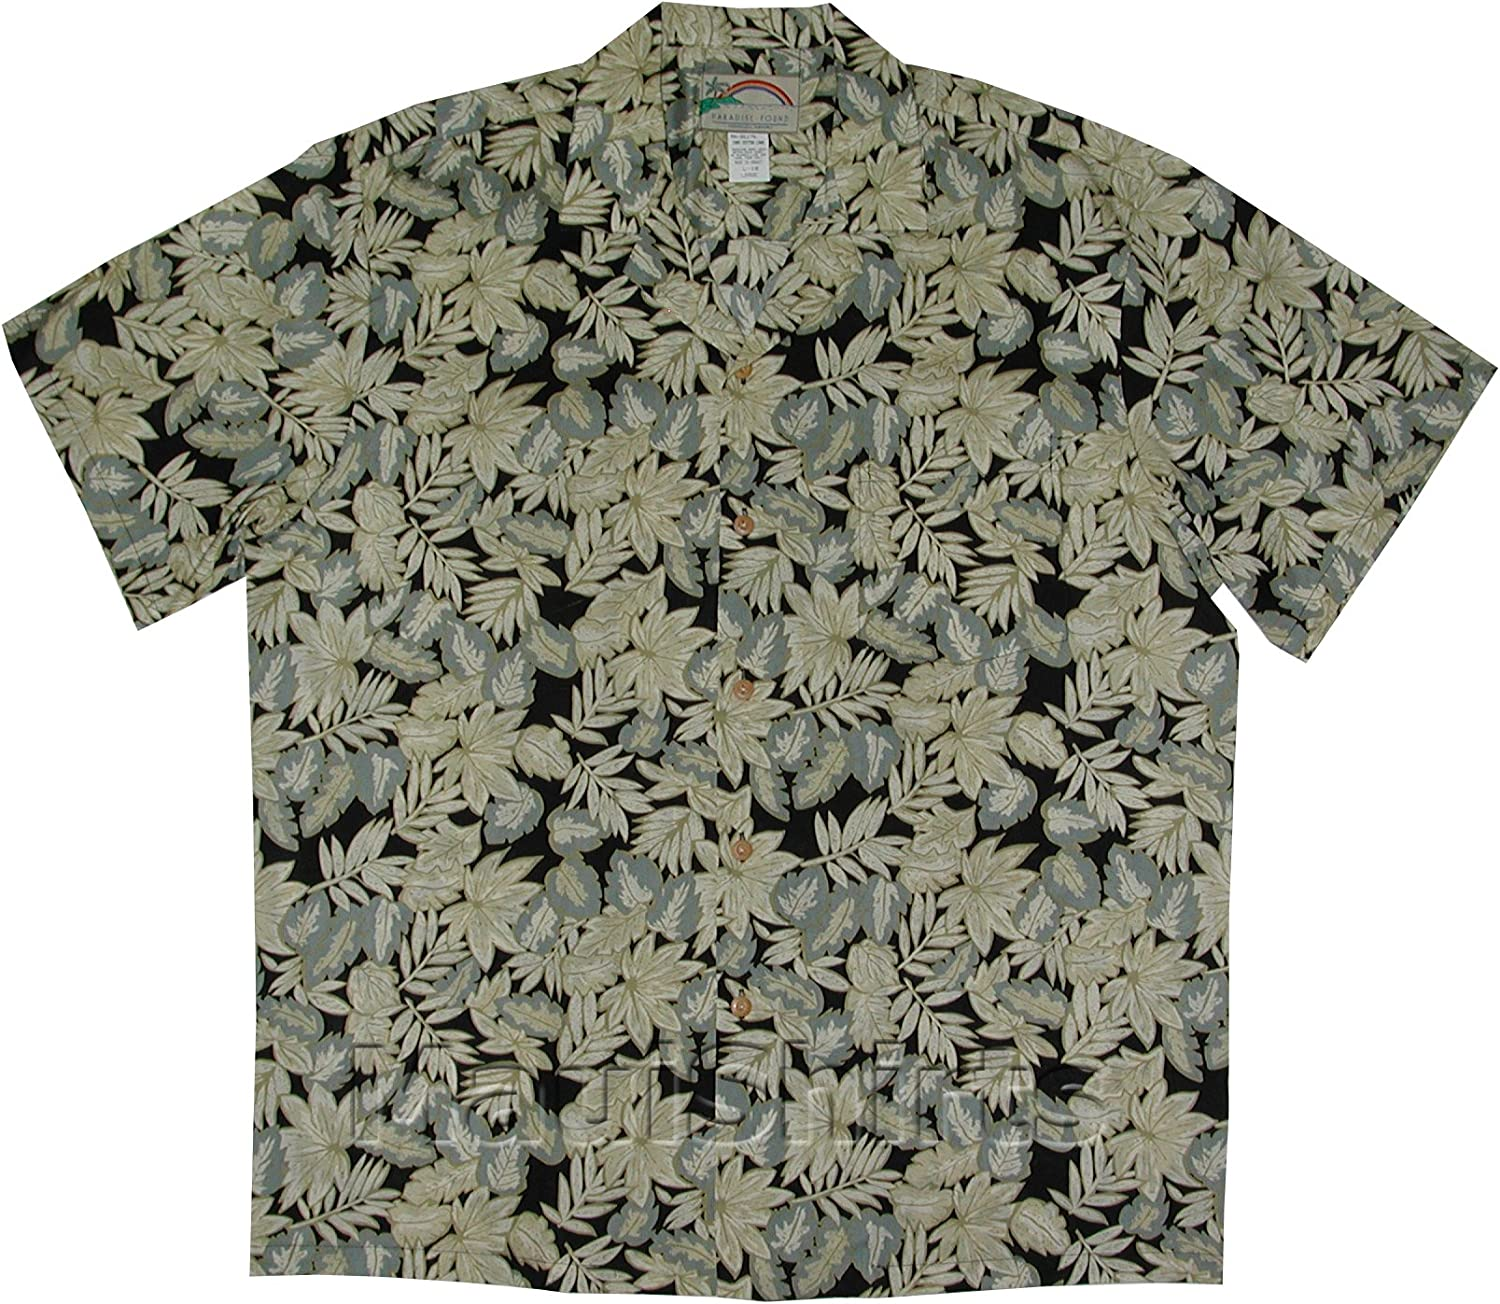 Tropical Leaves Men's Hawaiian Aloha We OFFer at cheap prices Shirt Cotton Sacramento Mall Lawn Vintage